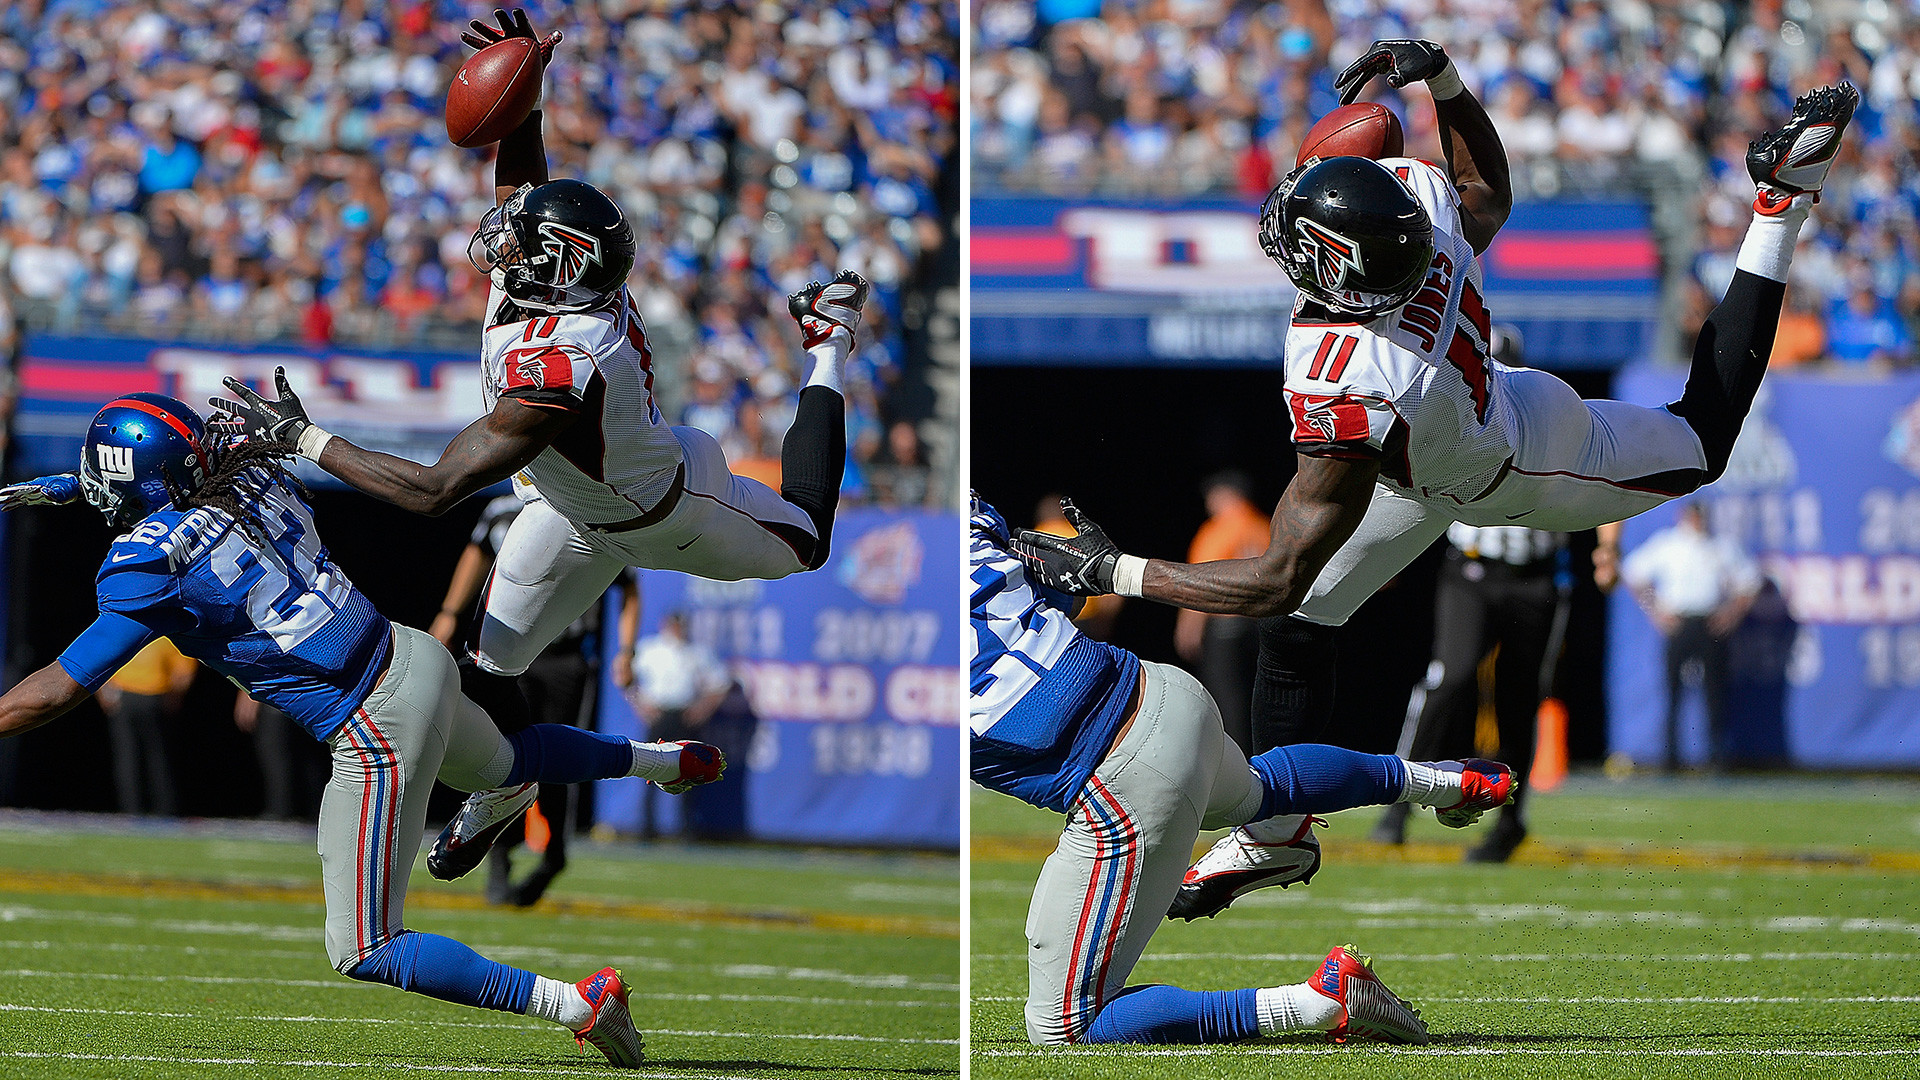 NFL Week 2 highlights: Wild plays from Julio Jones, Cam Newton, others    NFL   Sporting News